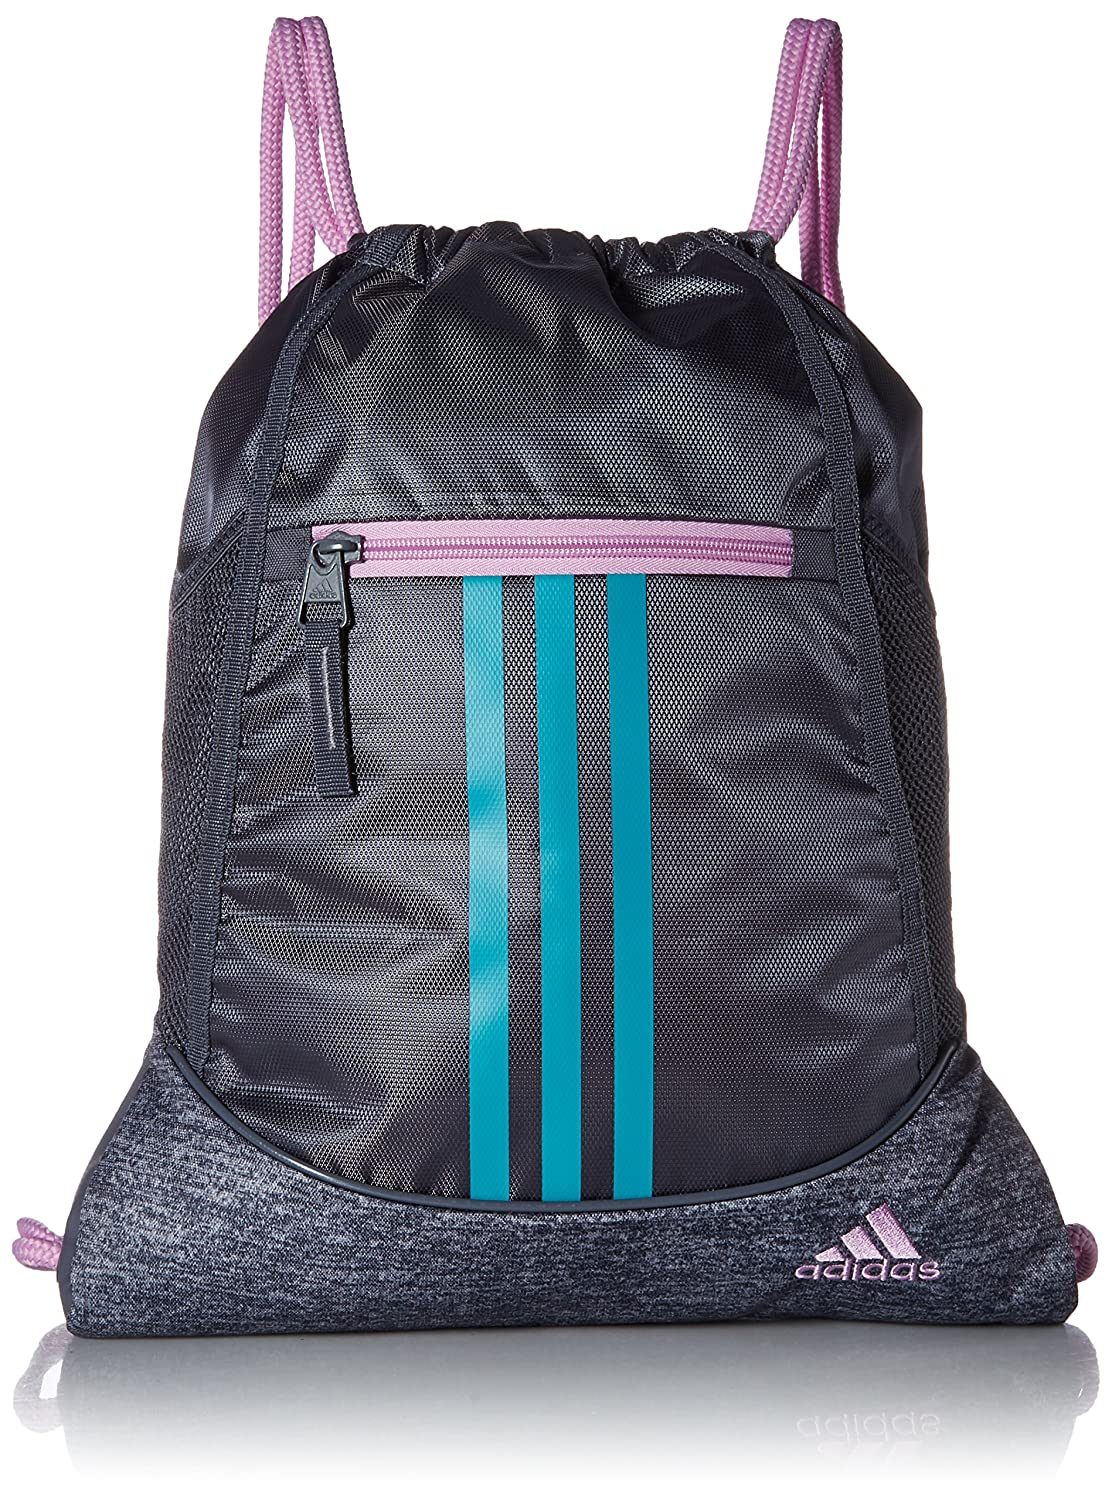 Adidas Alliance II Sackpack B077MMSTJX One Size|Onix/Onix Jersey/Clear Lilac Purple/Hi - Res Aqua Gr Onix/Onix Jersey/Clear Lilac Purple/Hi  Res Aqua Gr One Size